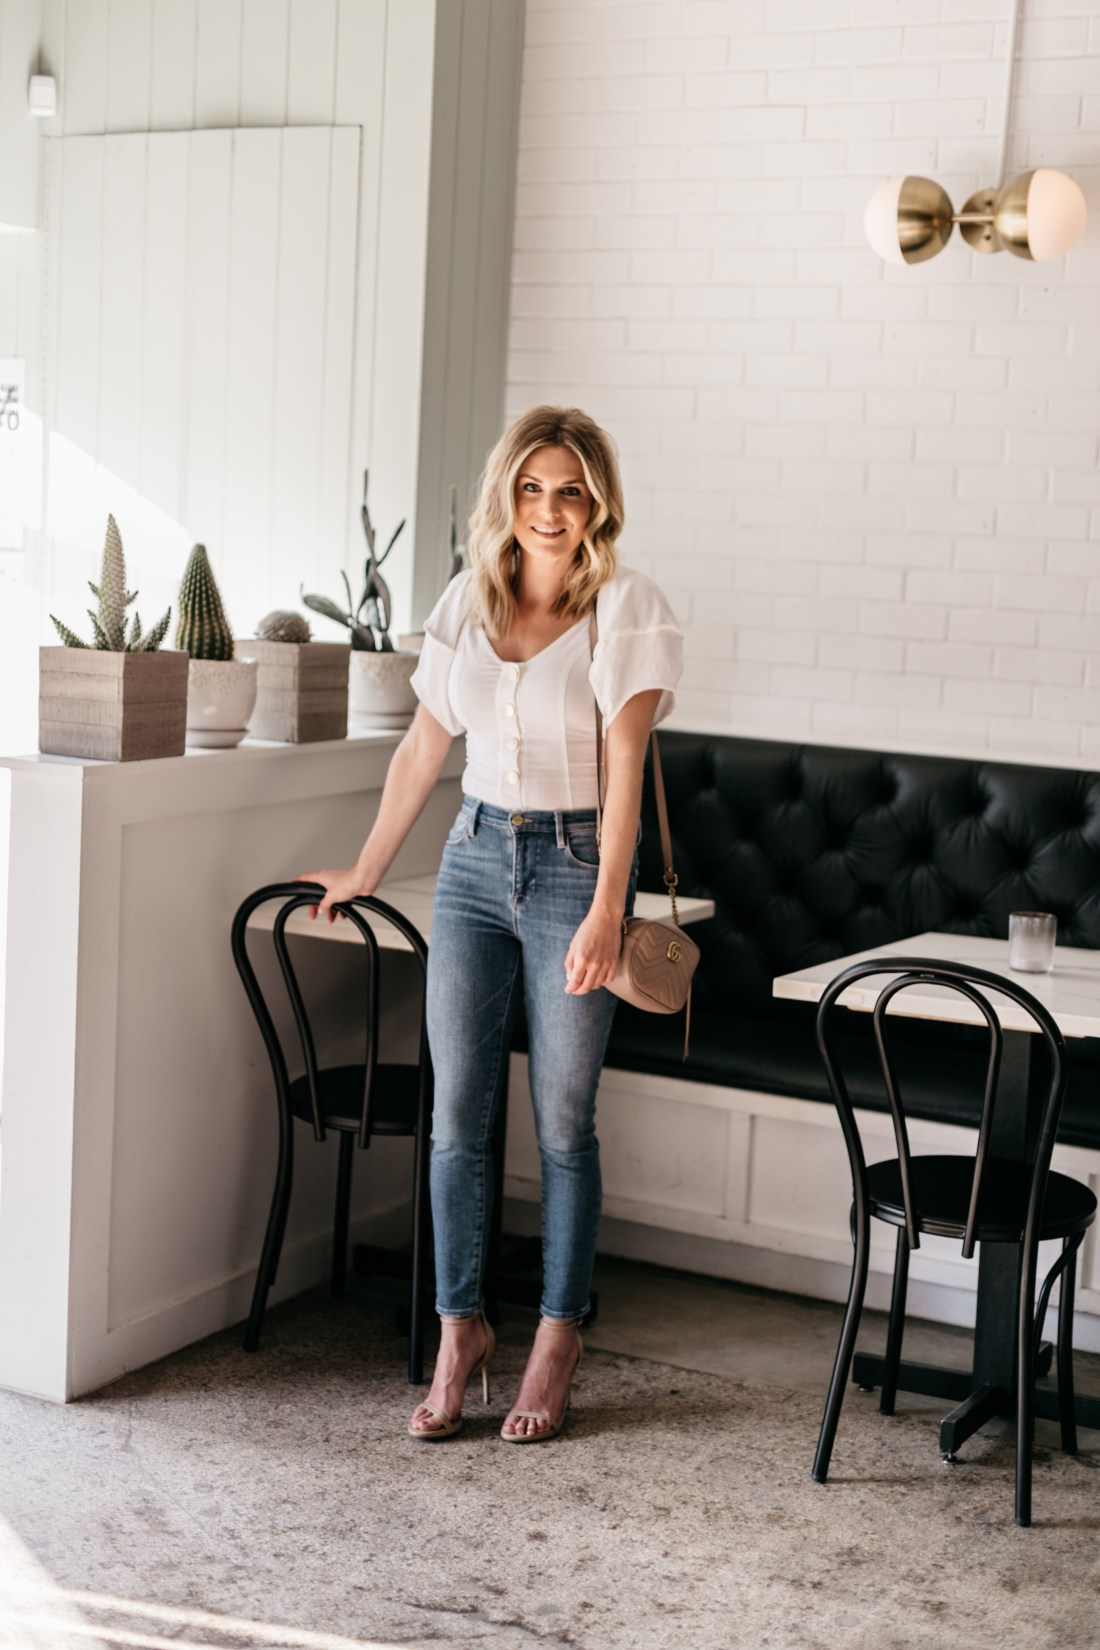 white top and jeans outfit